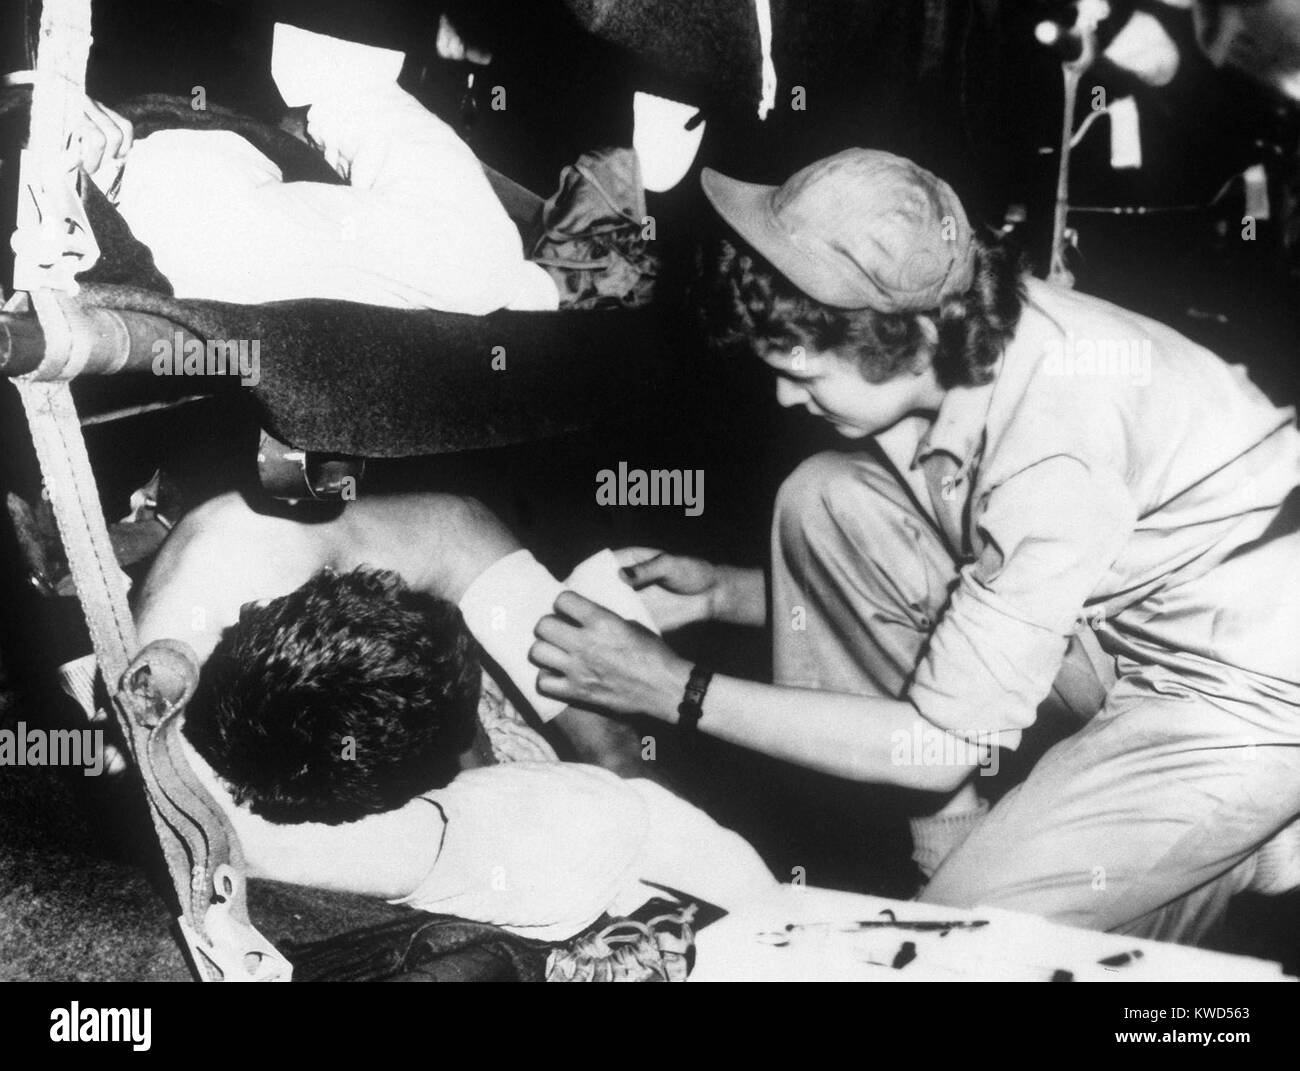 U.S. flight nurse dresses a soldier's wound during the flight from Korea to Japan, May 1951. Korean War, 1950 - Stock Image